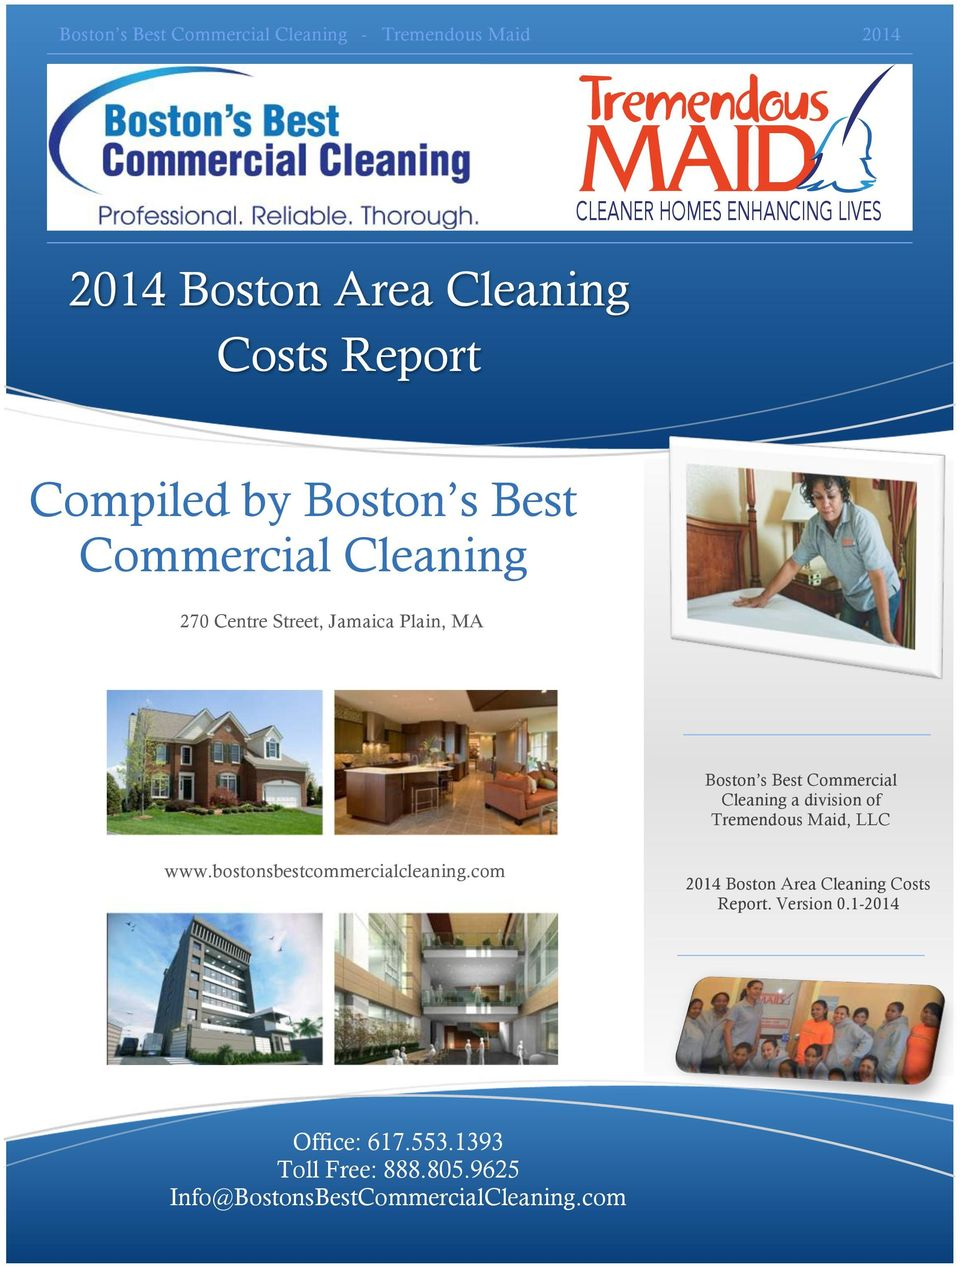 Commercial Cleaning a division of Tremendous Maid, LLC www.bostonsbestcommercialcleaning.